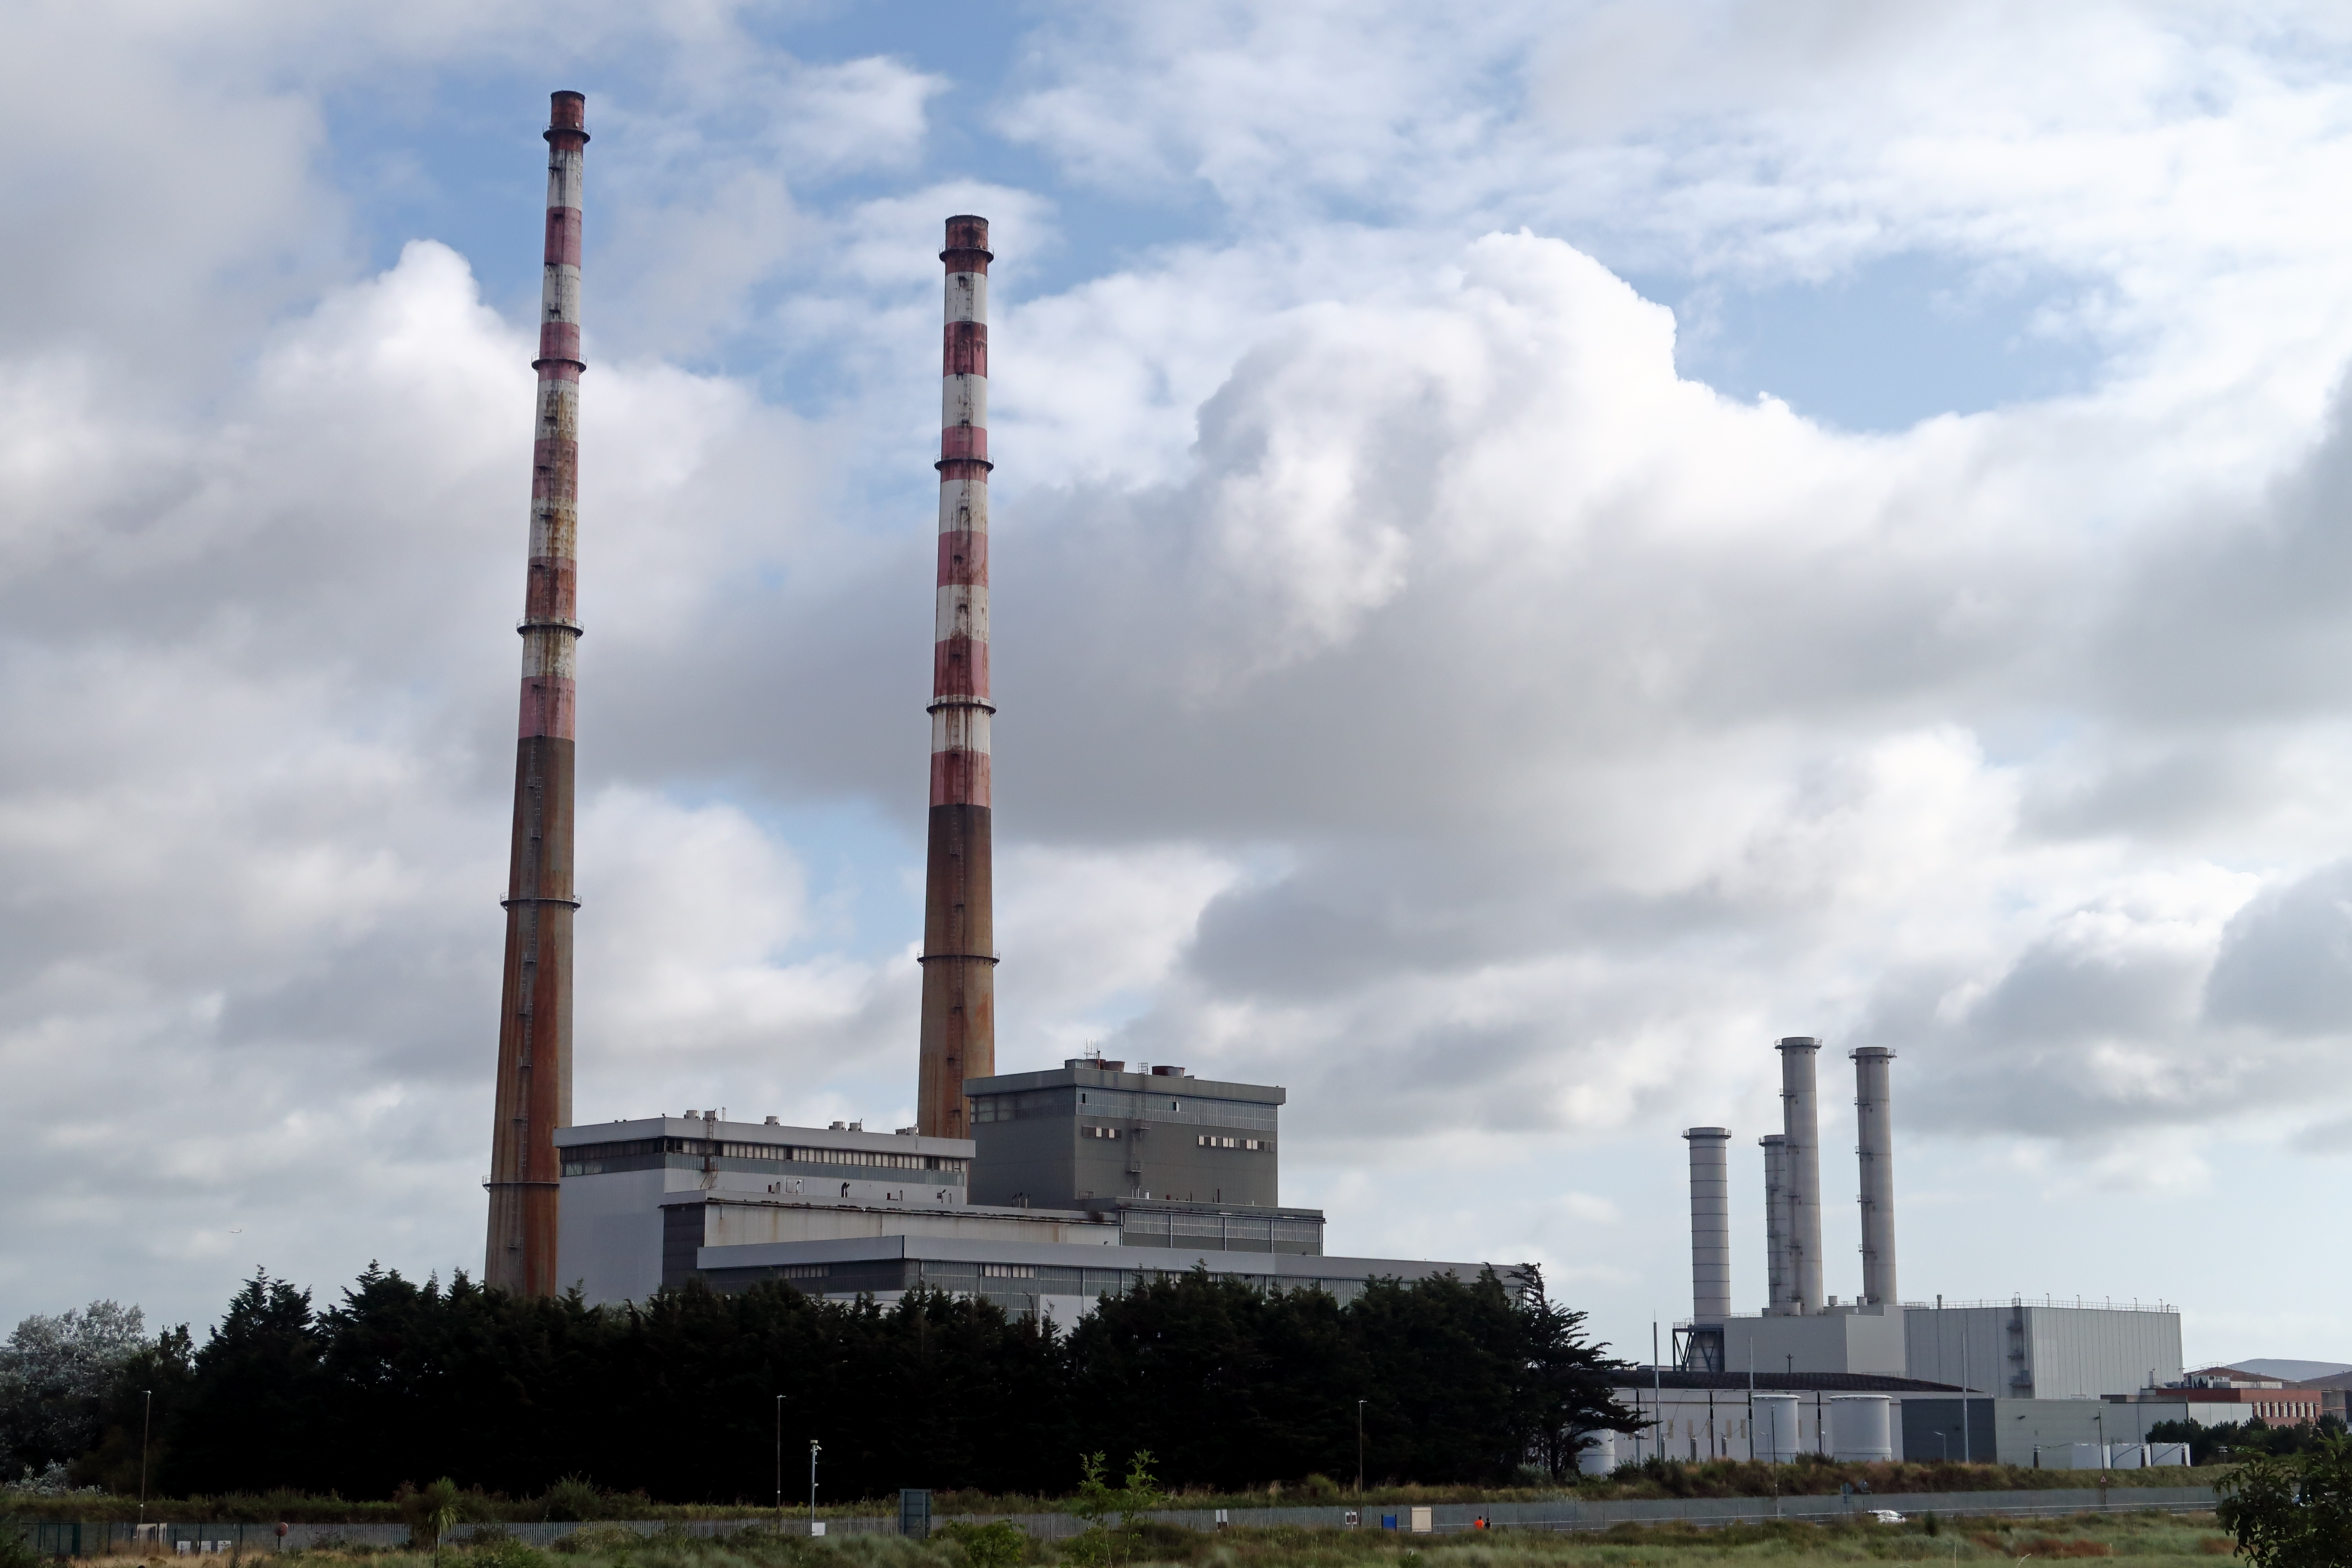 08 Poolbeg Power Station